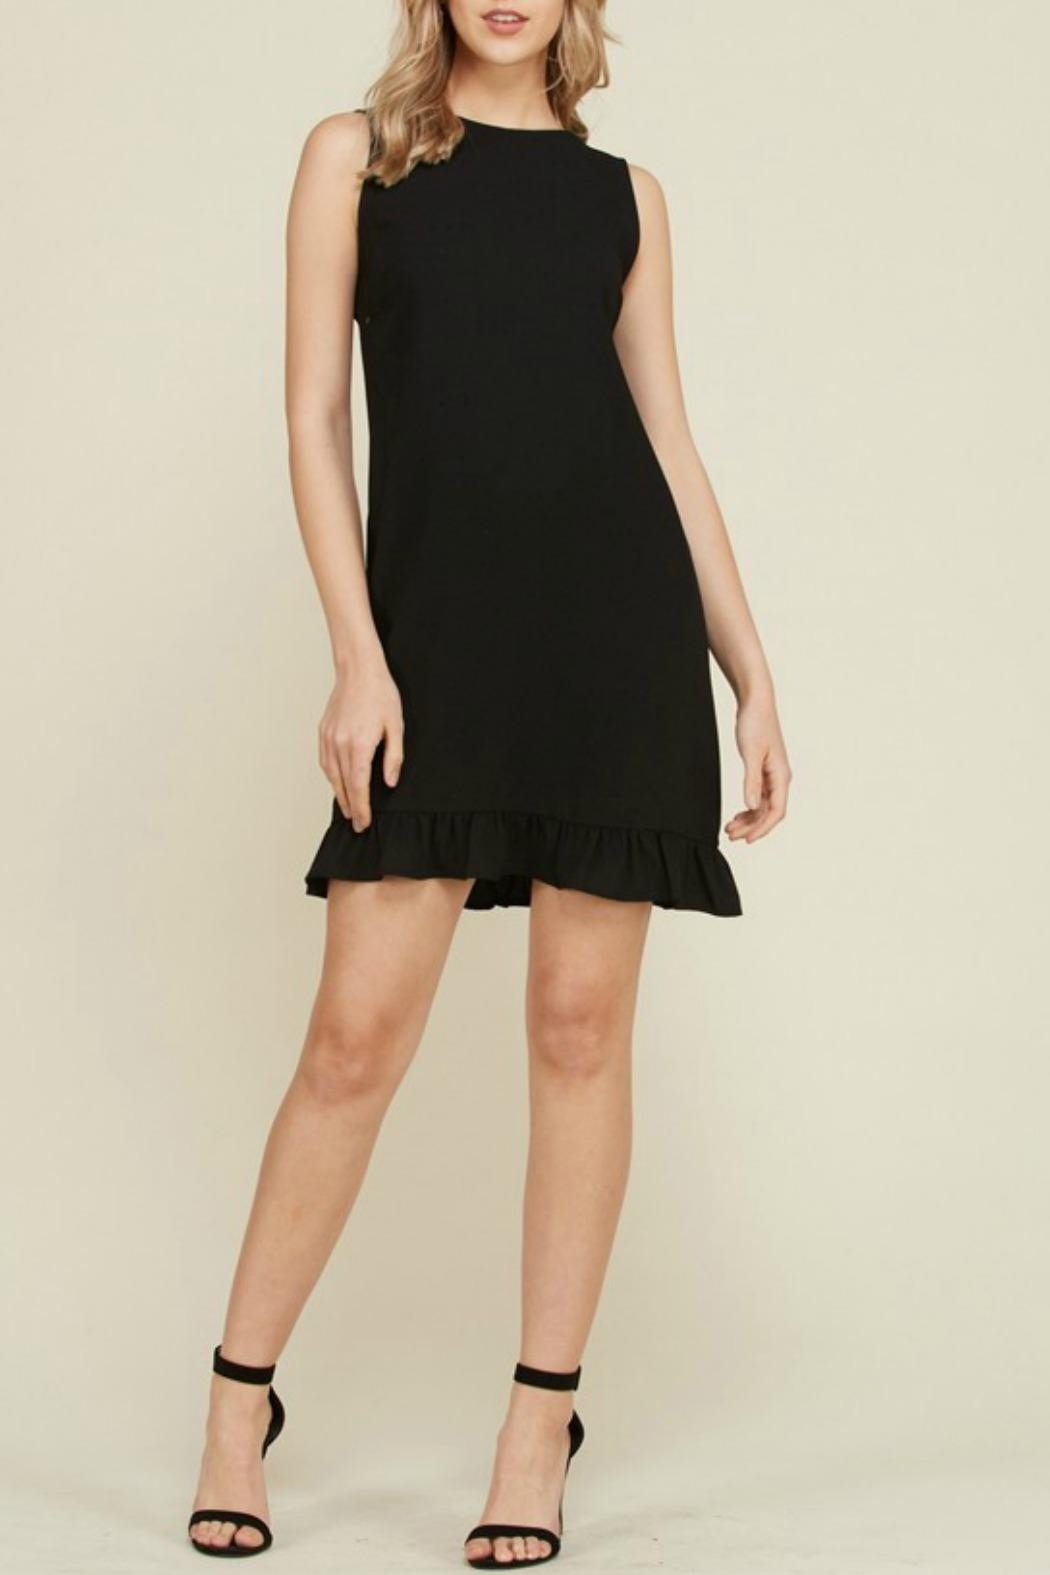 2 Hearts Trina Black Dress - Side Cropped Image